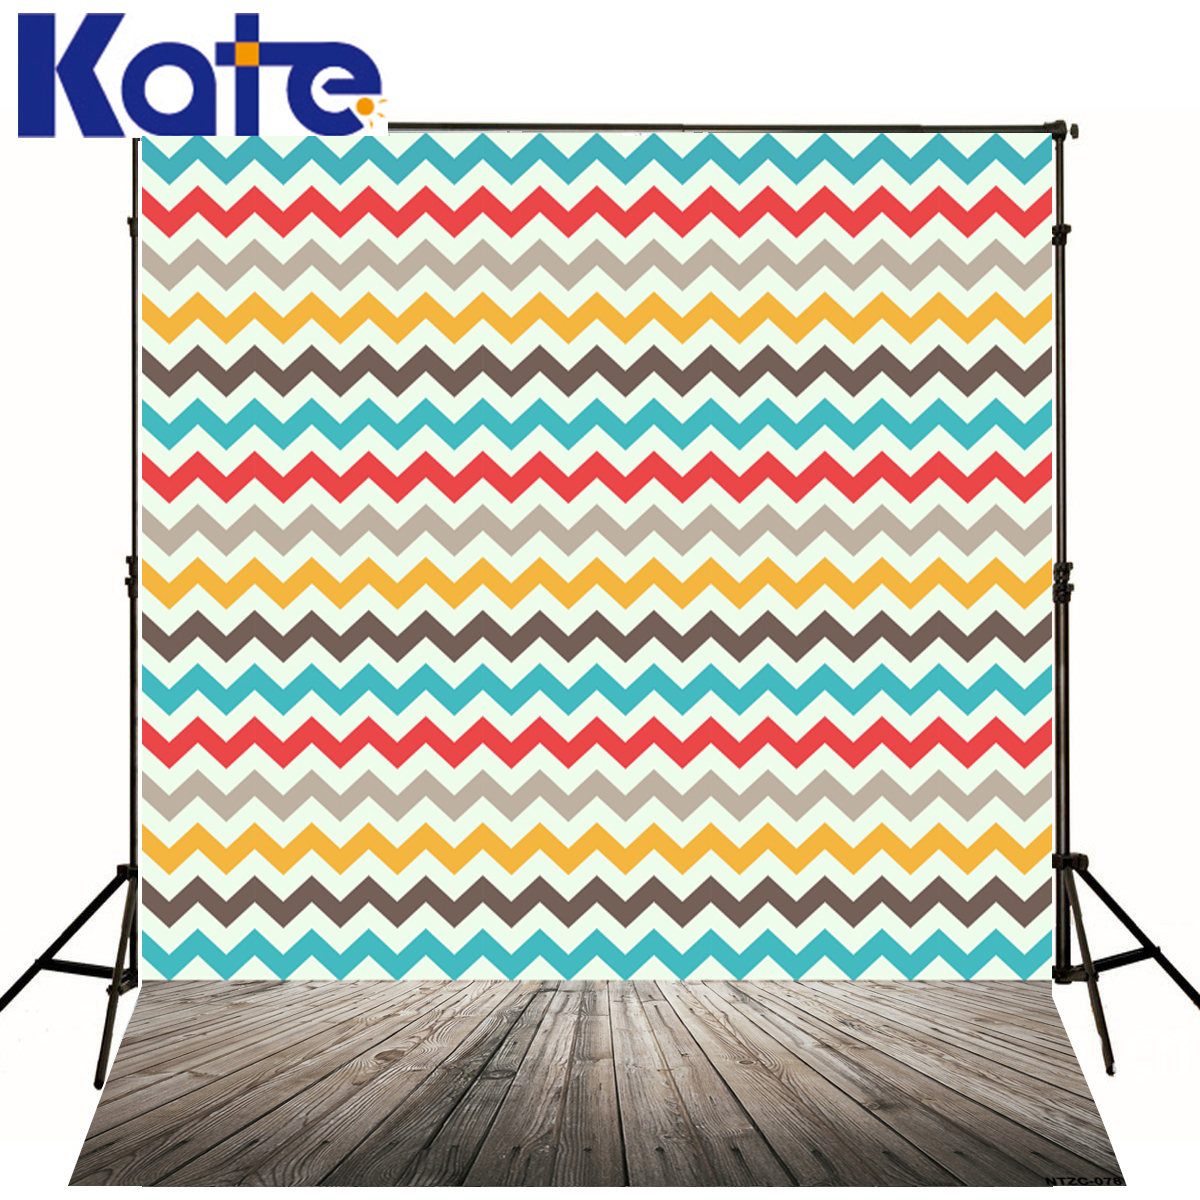 Kate Colored Wavy Stripes Backdrops Photography Wood Floor Digital Print Photographic Background For Photo Studio J01681 bering bering 11422 742